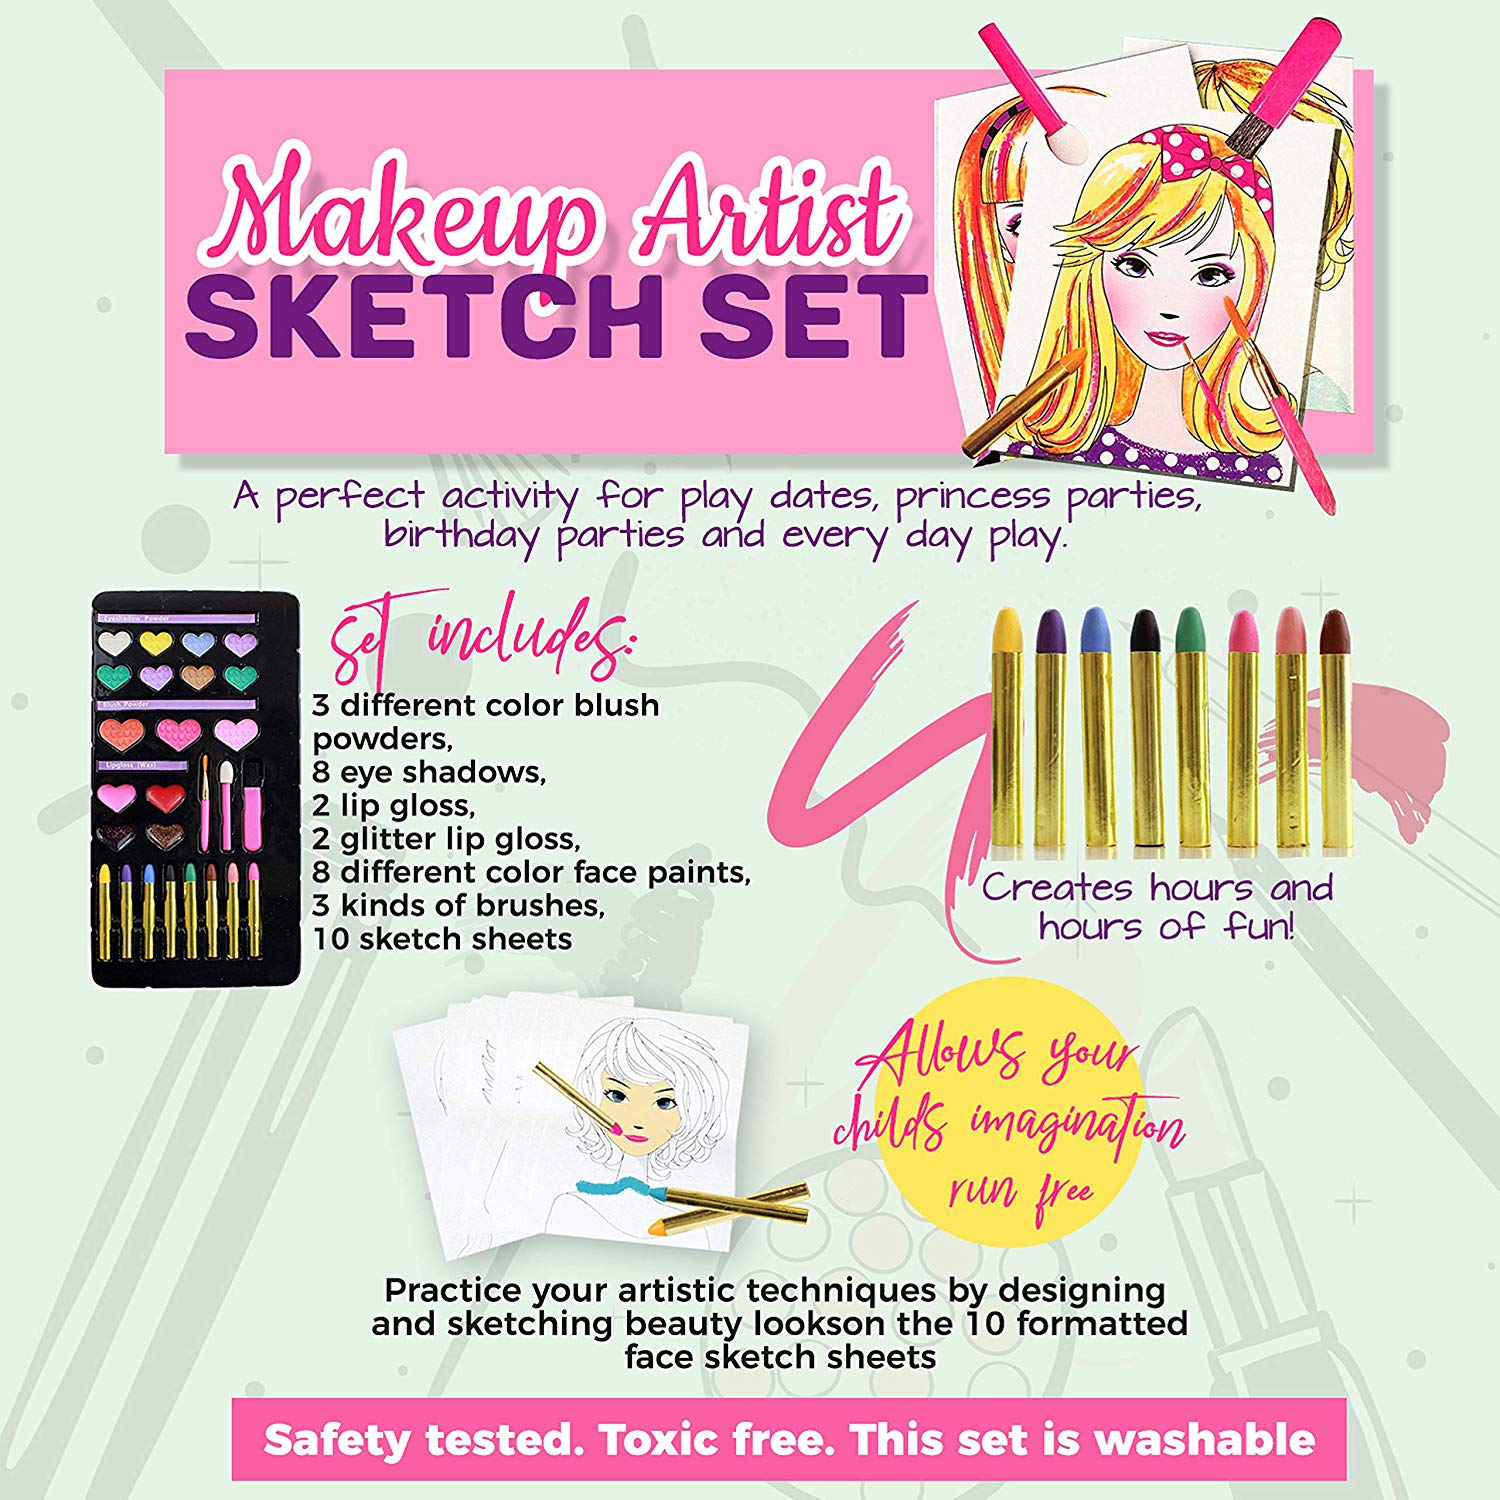 IQ Toys Makeup Artist Sketch Set with 10 Design Sketch Sheets. Create Hair Styles, Nail Designs, and Makeup Looks